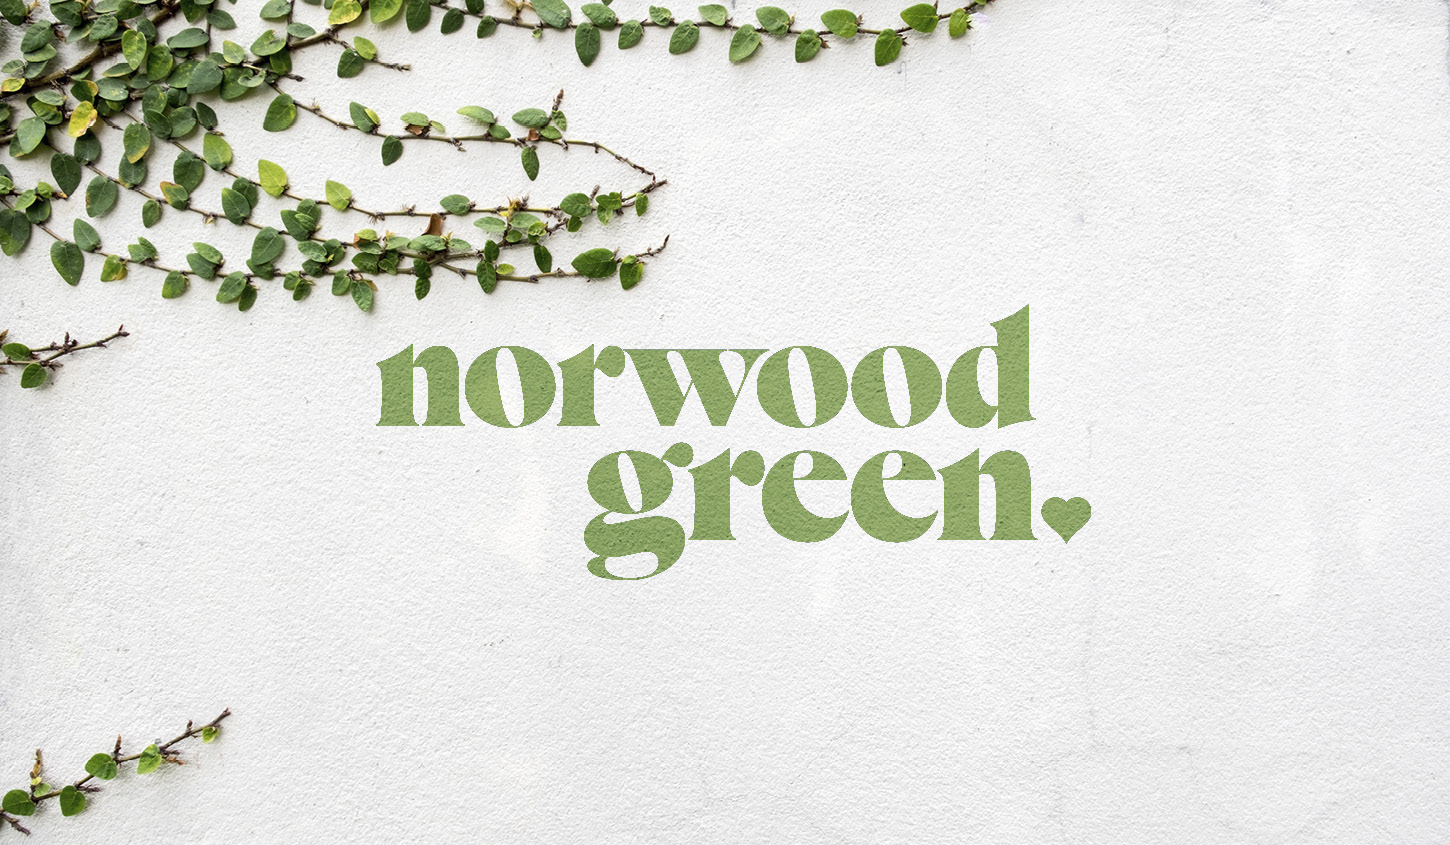 Norwood-Green